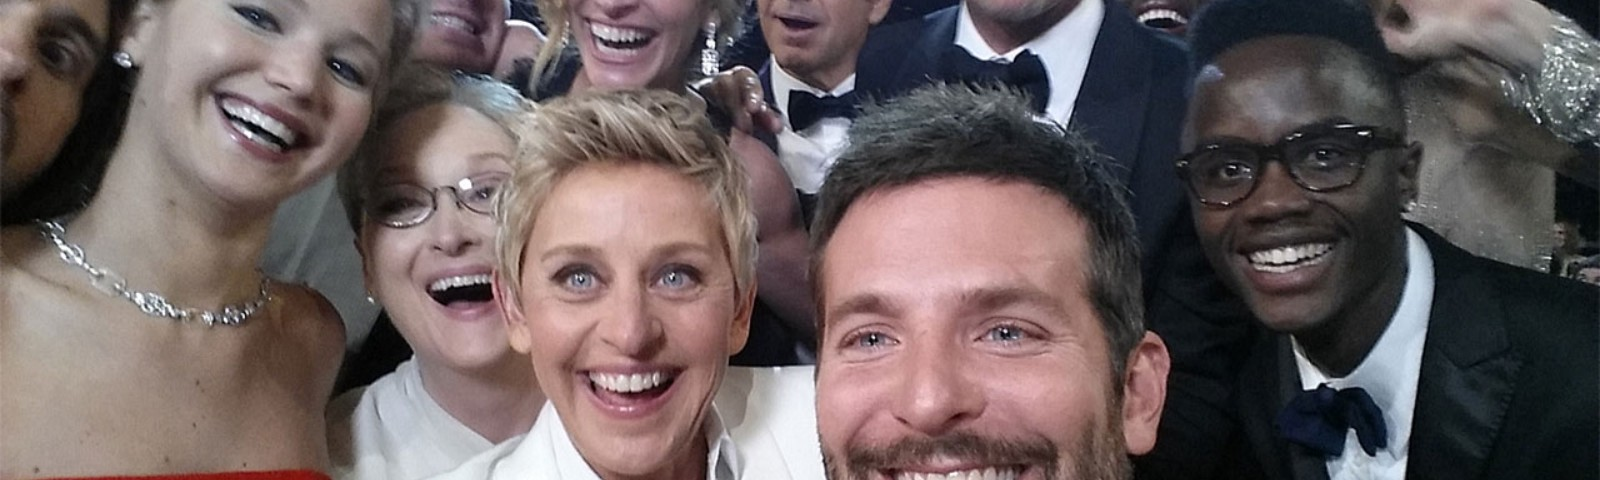 There's a whole lot of quality acting chops in this Ellen DeGeneres selfie from the Oscars!